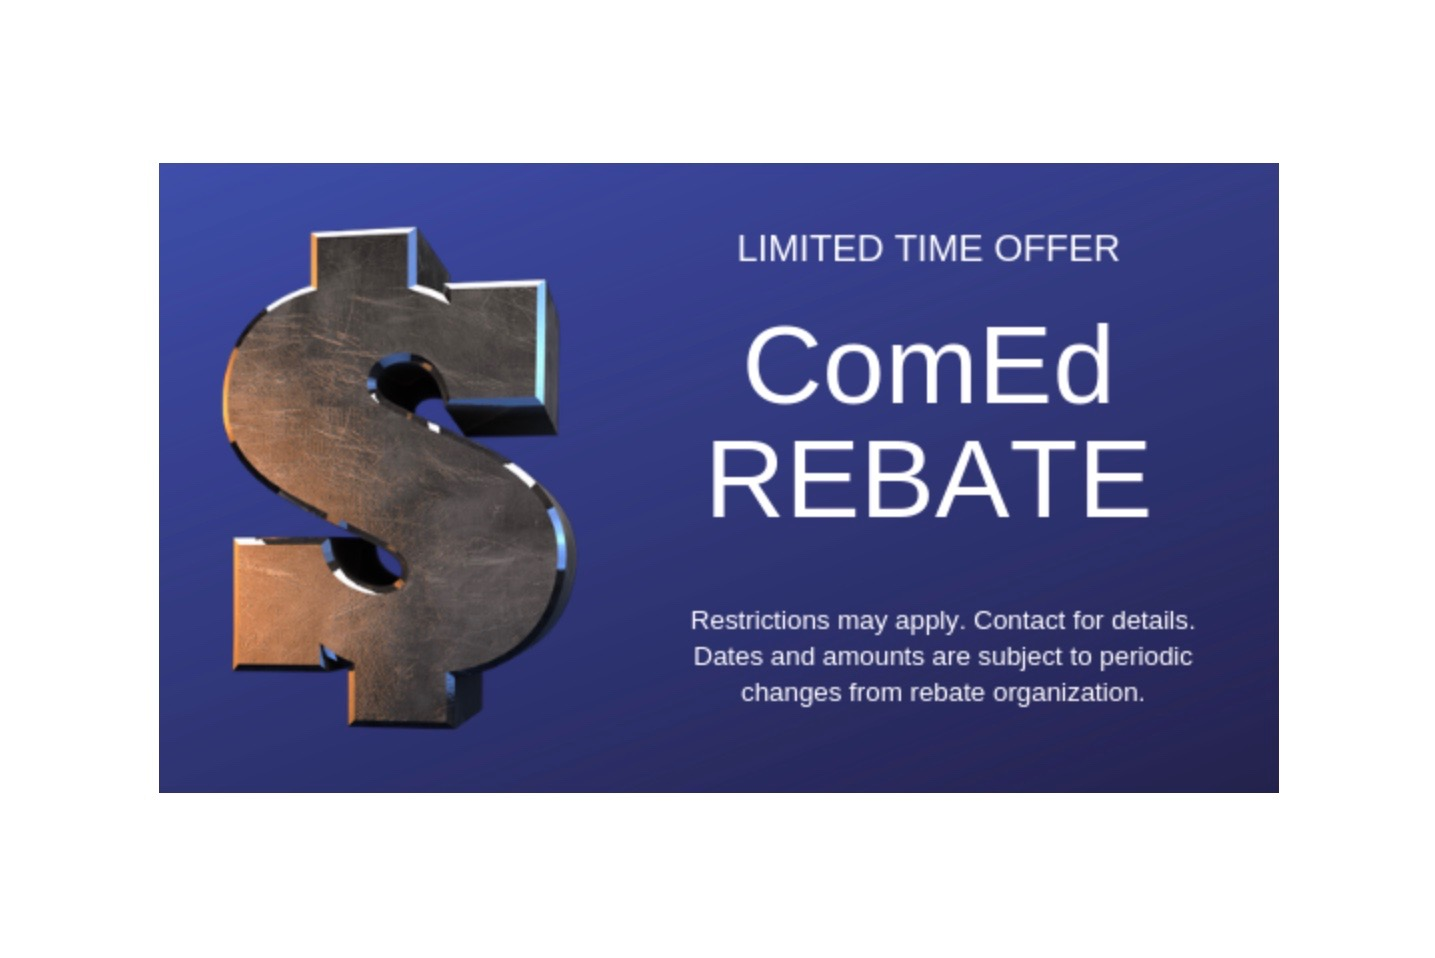 ComEd Rebate - Save up to $650 max ComEd REBATE Limited Time Offer.Restrictions may apply. Contact for details. Dates and amounts are subject to periodic changes from rebate organization.